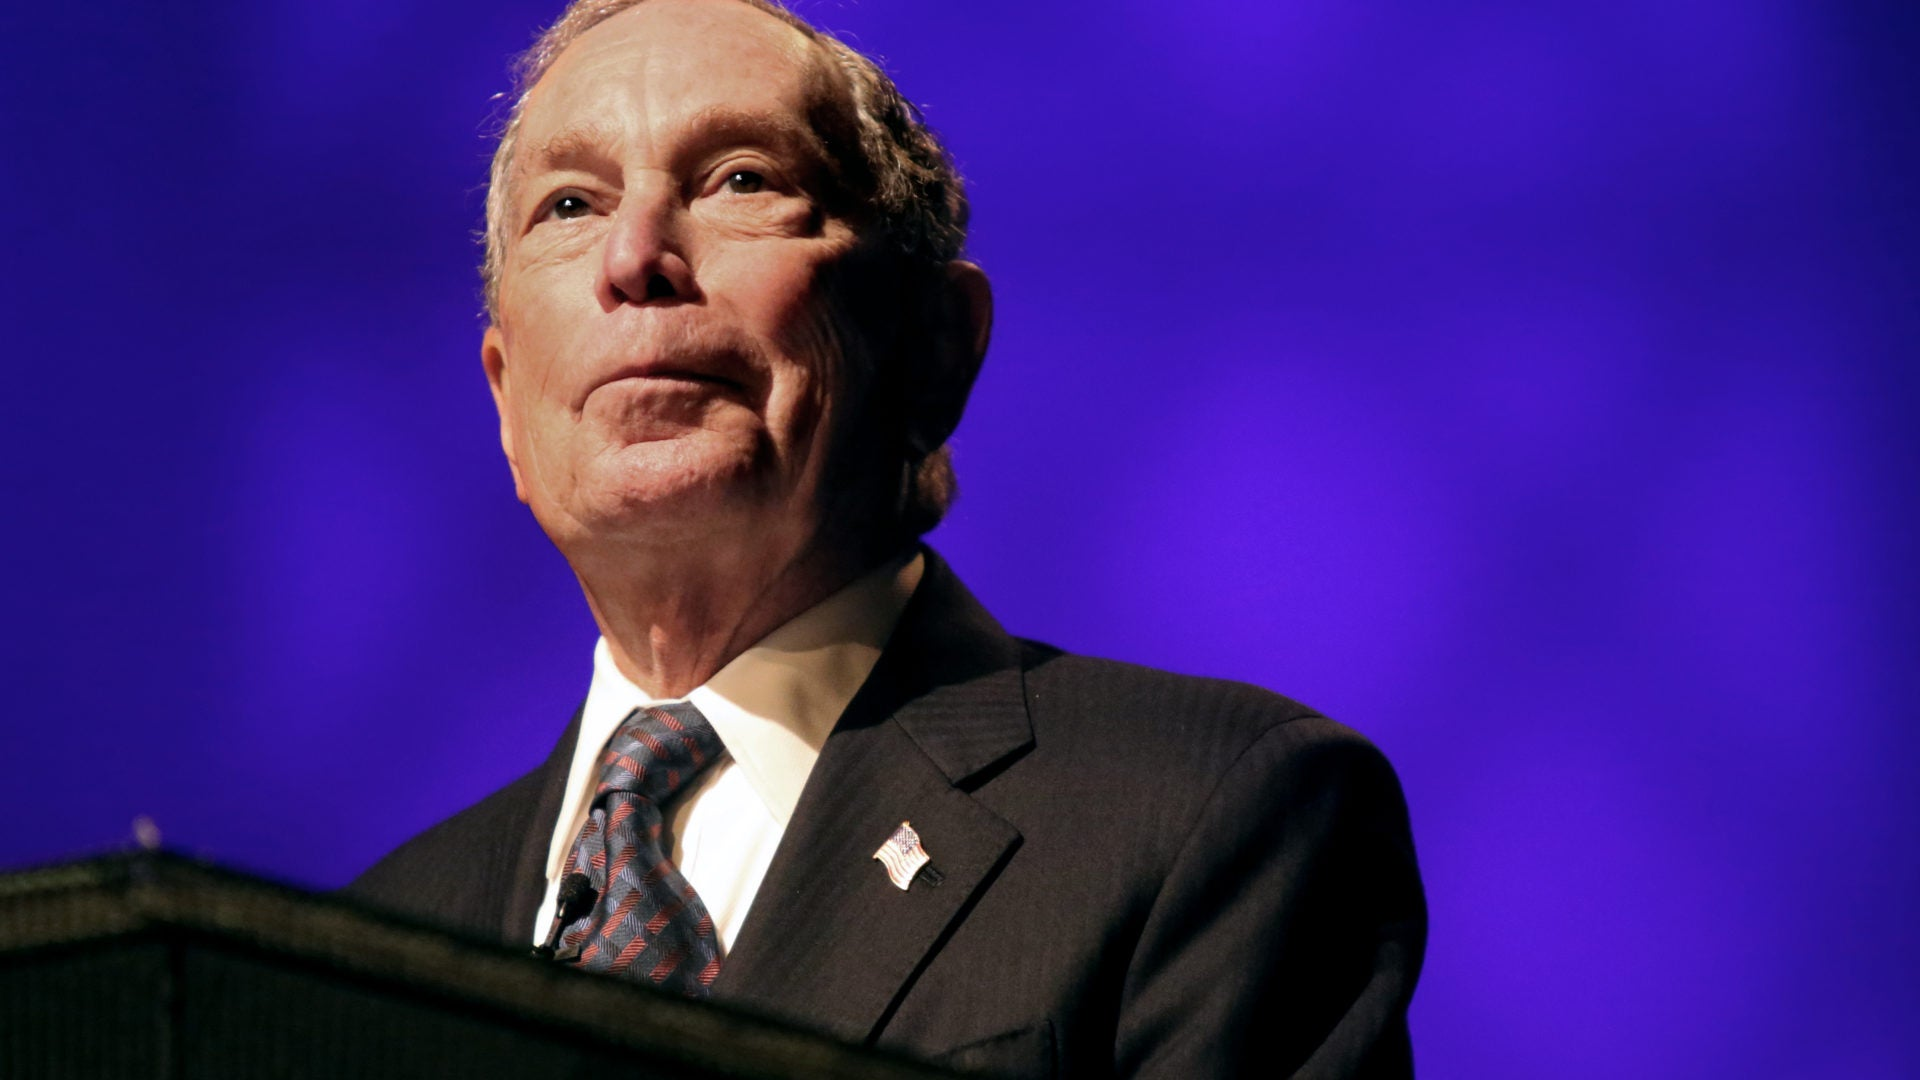 Bloomberg Secures Win In New Hampshire Town That Votes First In Primary